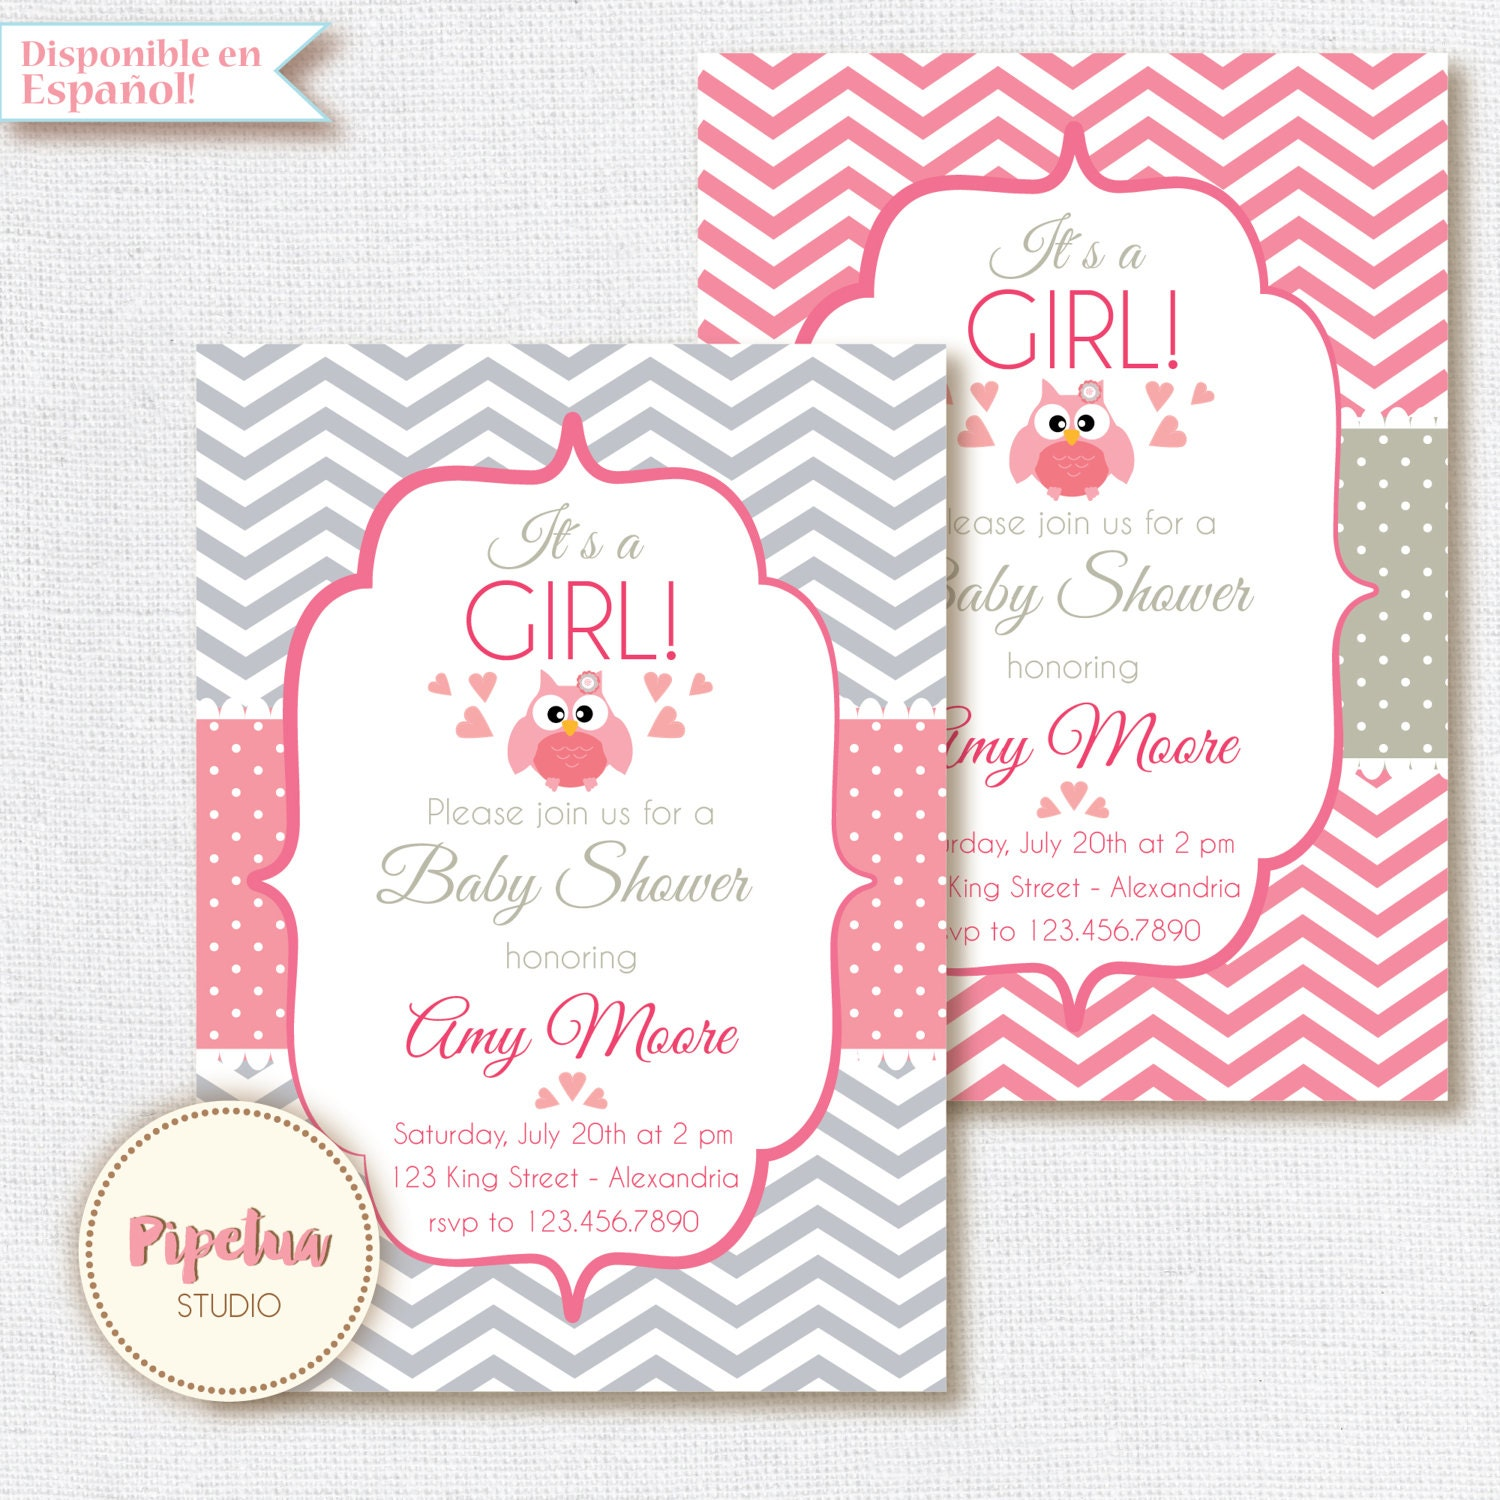 Leopard print baby shower invitations christmas card messages for baby shower invitation baby girl chevron style babyshower il fullxfull baby shower invitation baby girl chevron leopard print baby shower invitations filmwisefo Gallery